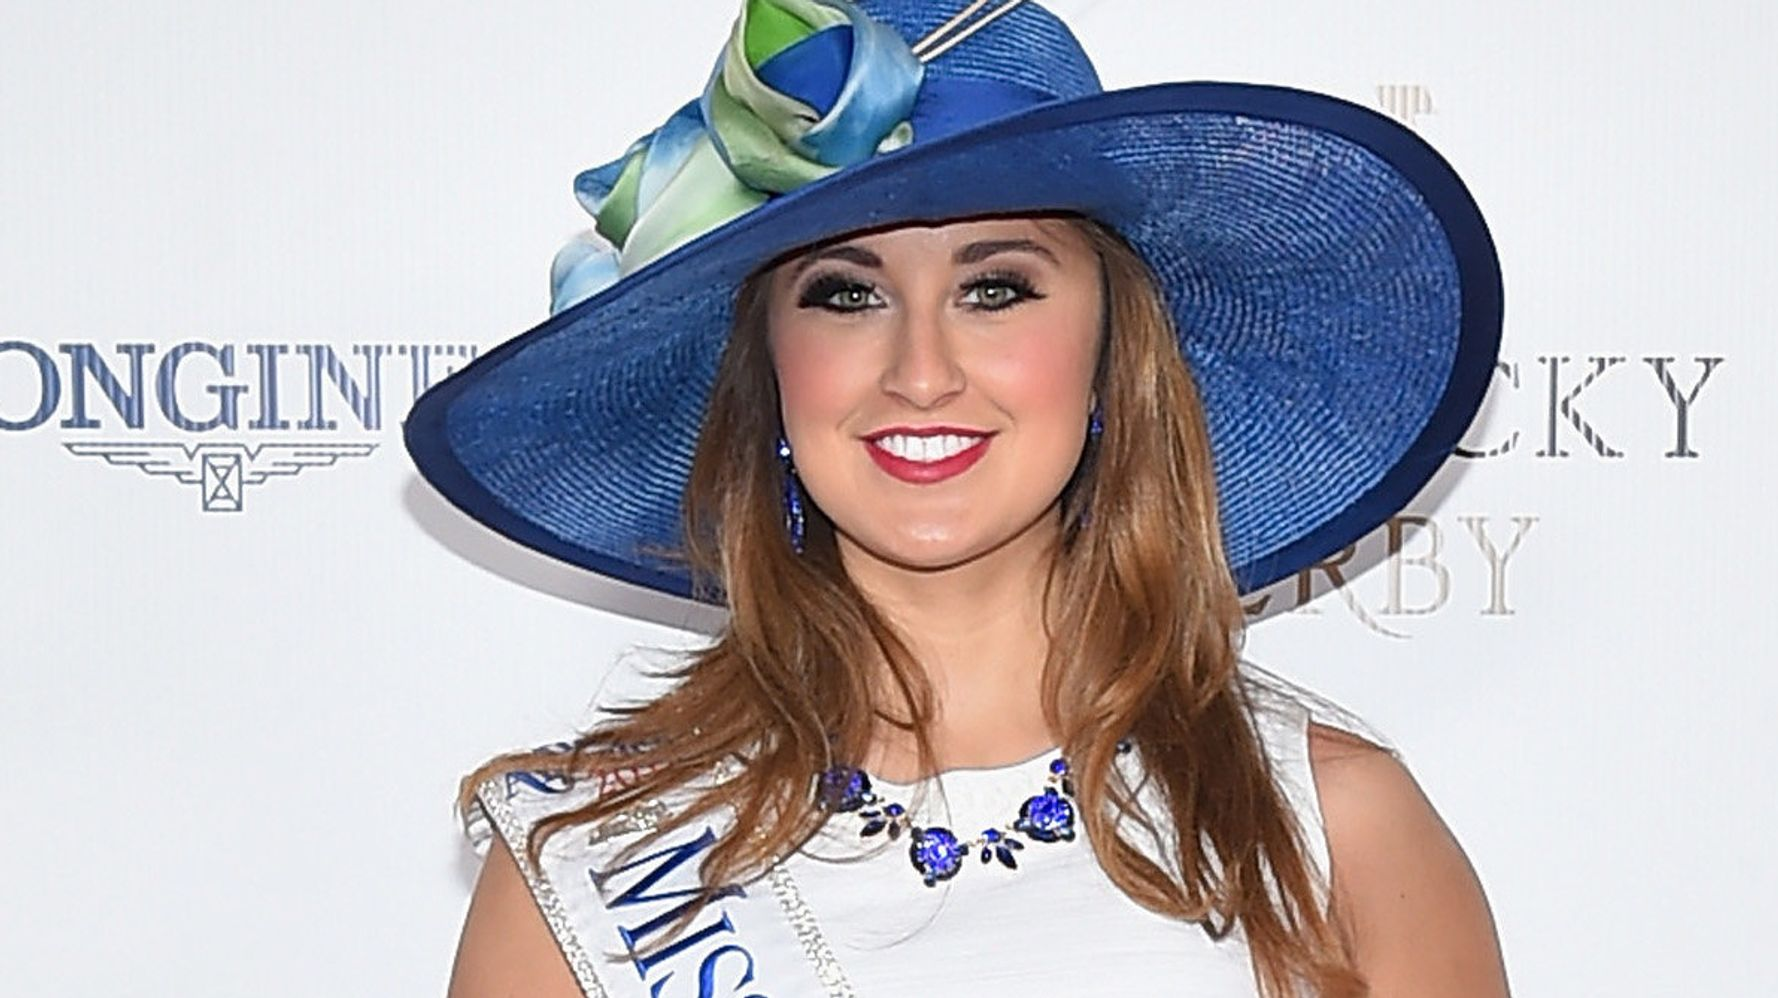 Ex-Miss Kentucky charged with sending nude photos to 15